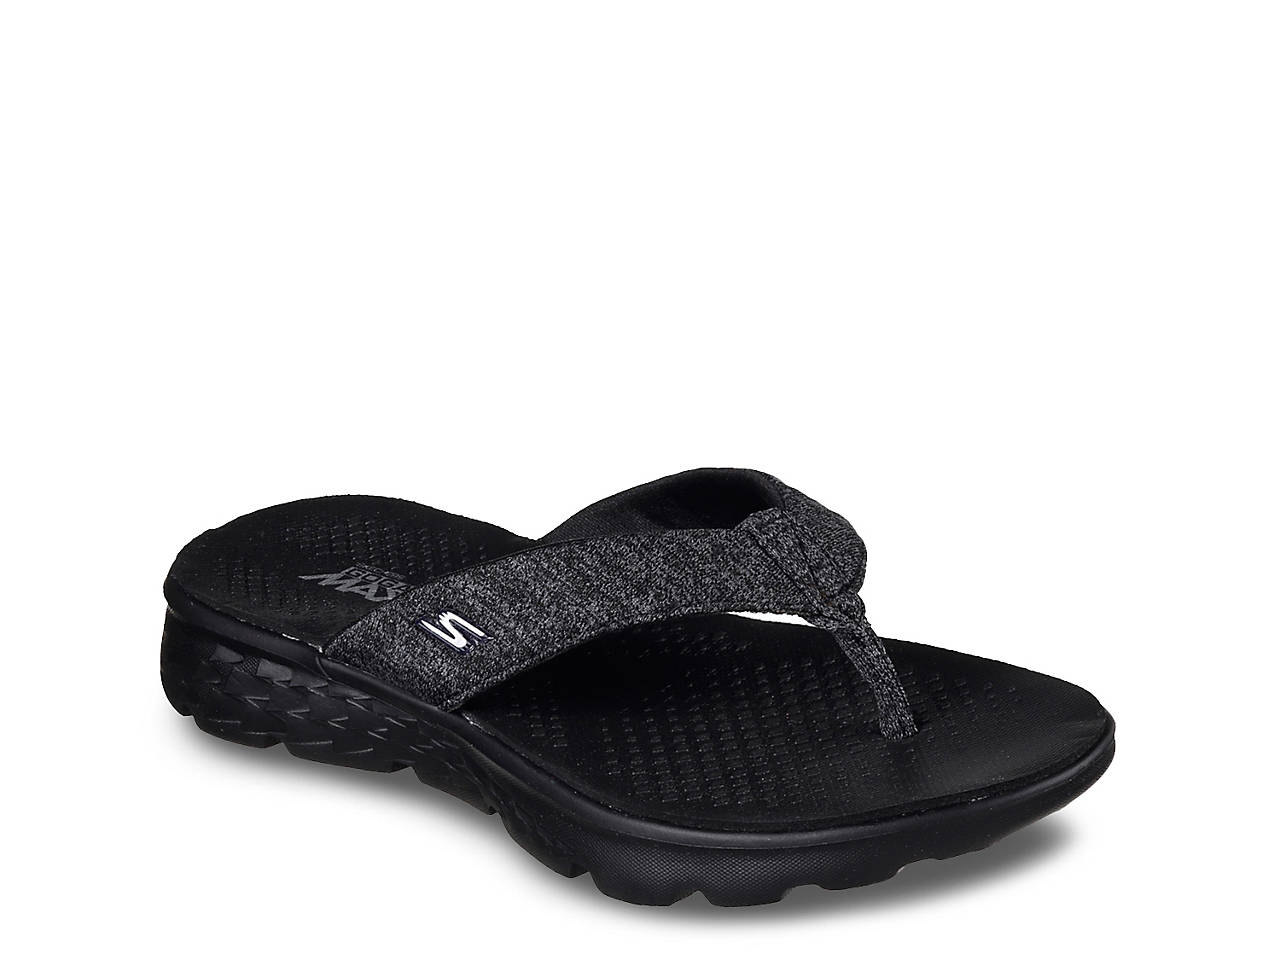 f79c7d36db2f Skechers On The Go Vivacity Flip Flop Women s Shoes